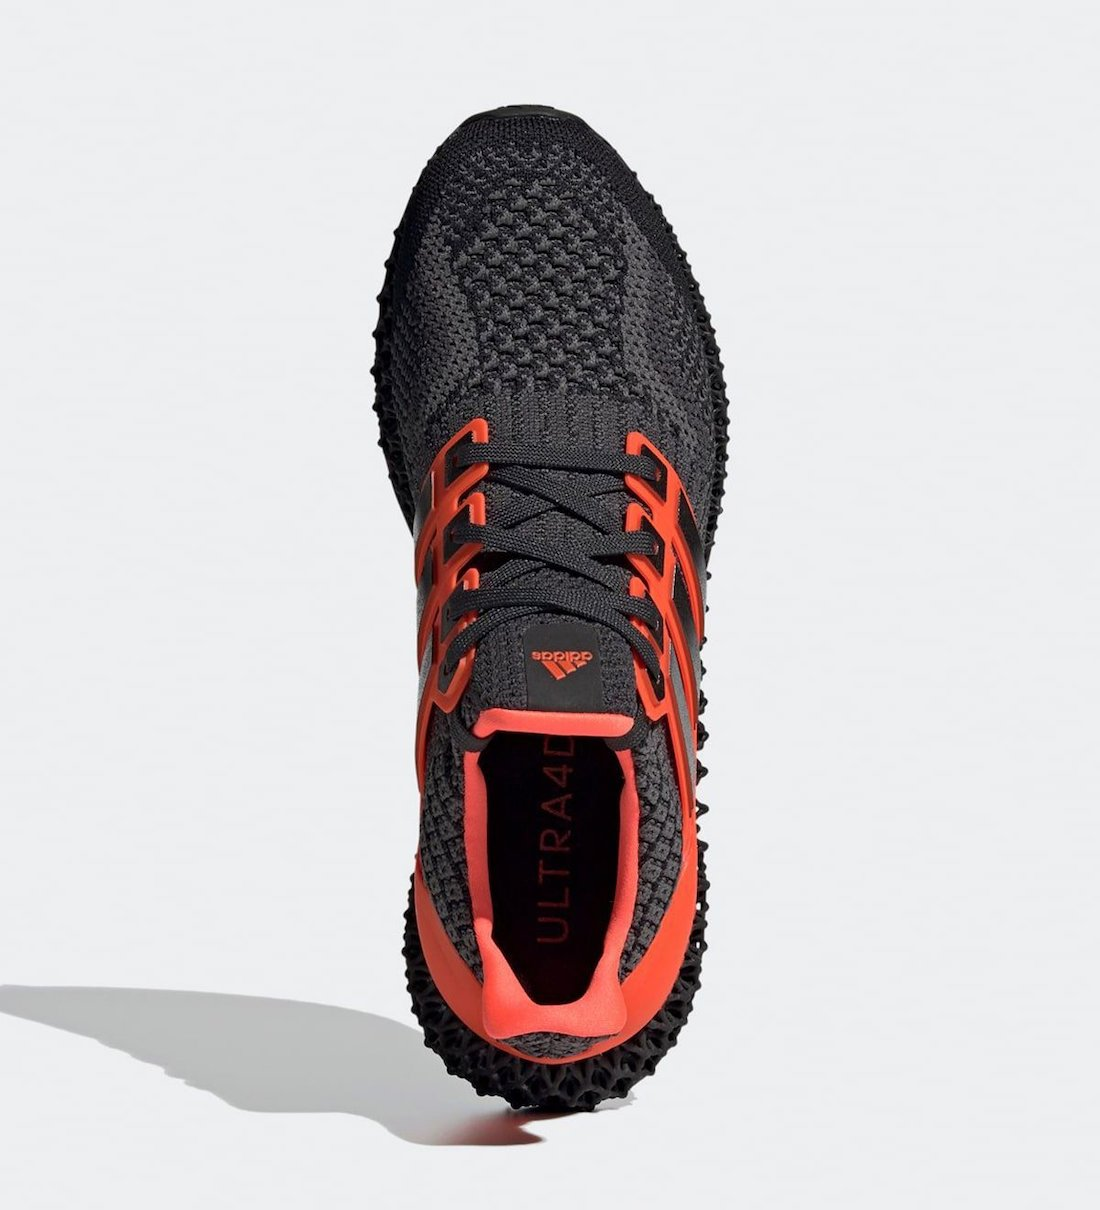 adidas Ultra 4D Core Black Solar Red G58159 Release Date